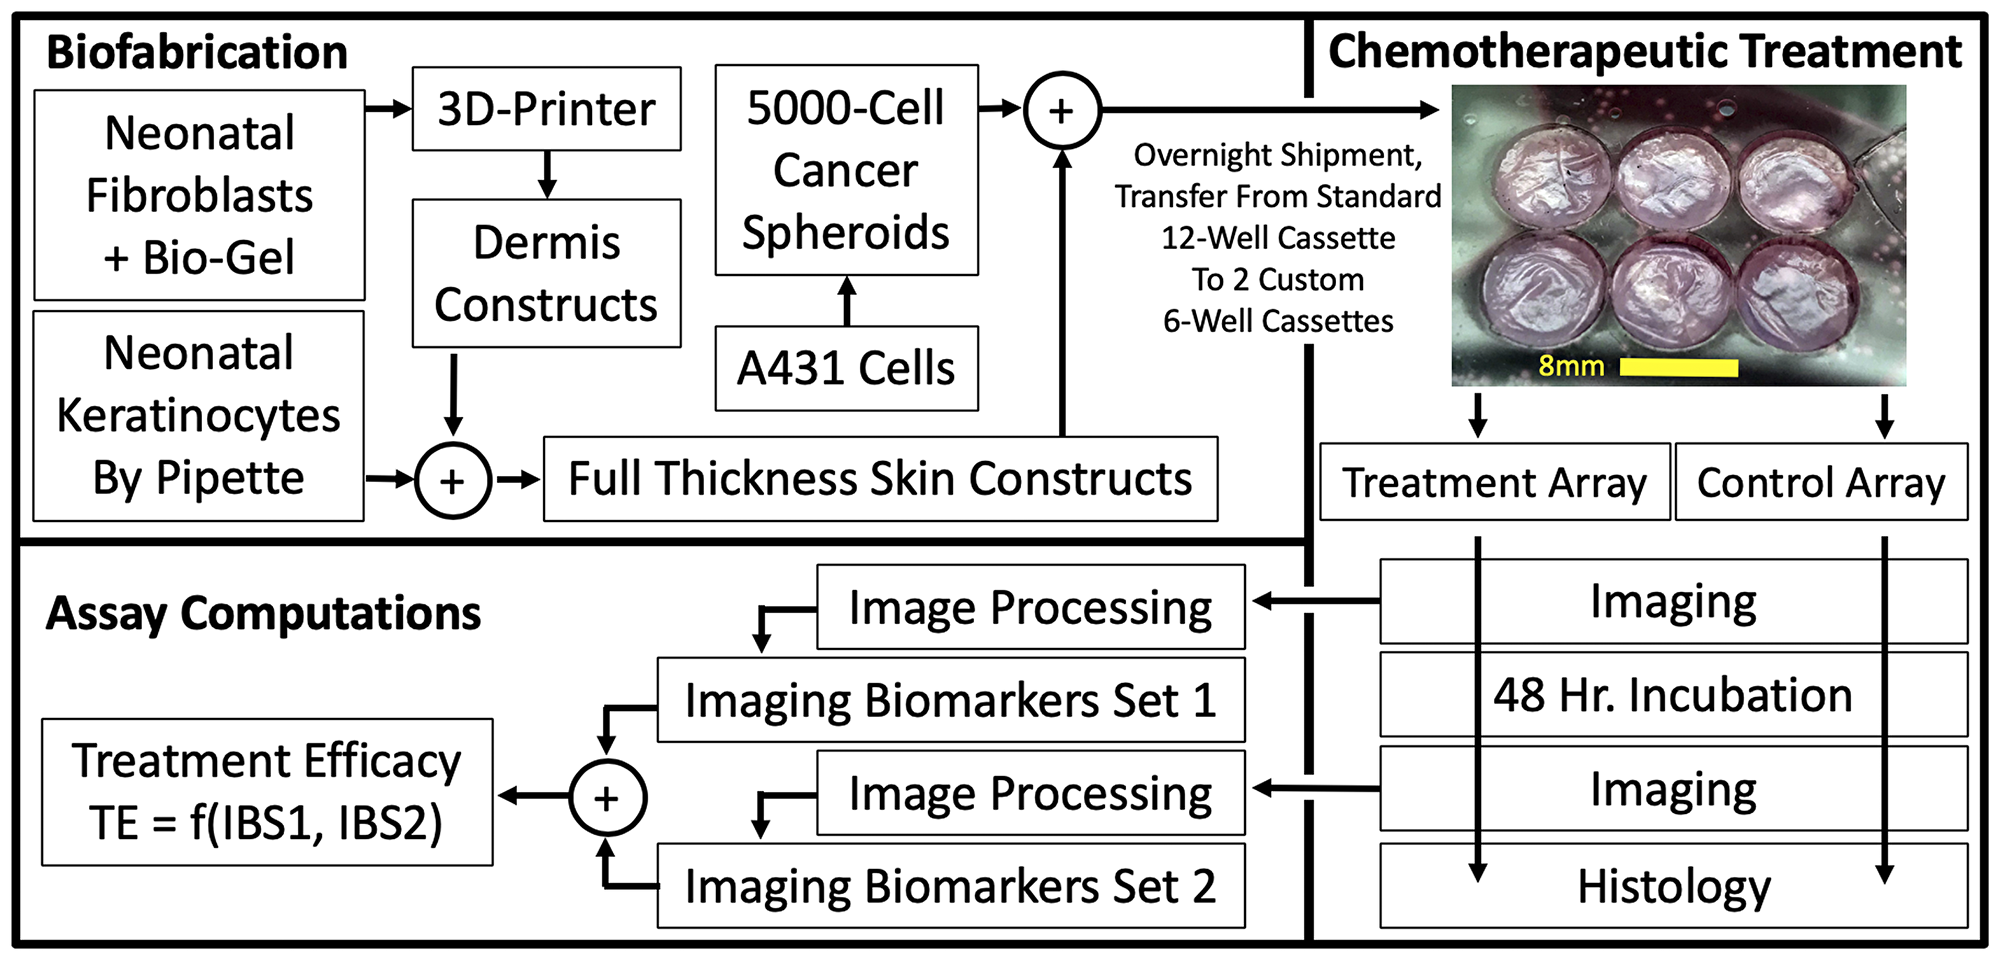 3D, Biofabricated tissue model system and chemotherapeutic assay using multi-channel confocal microscopy imaging biomarkers.